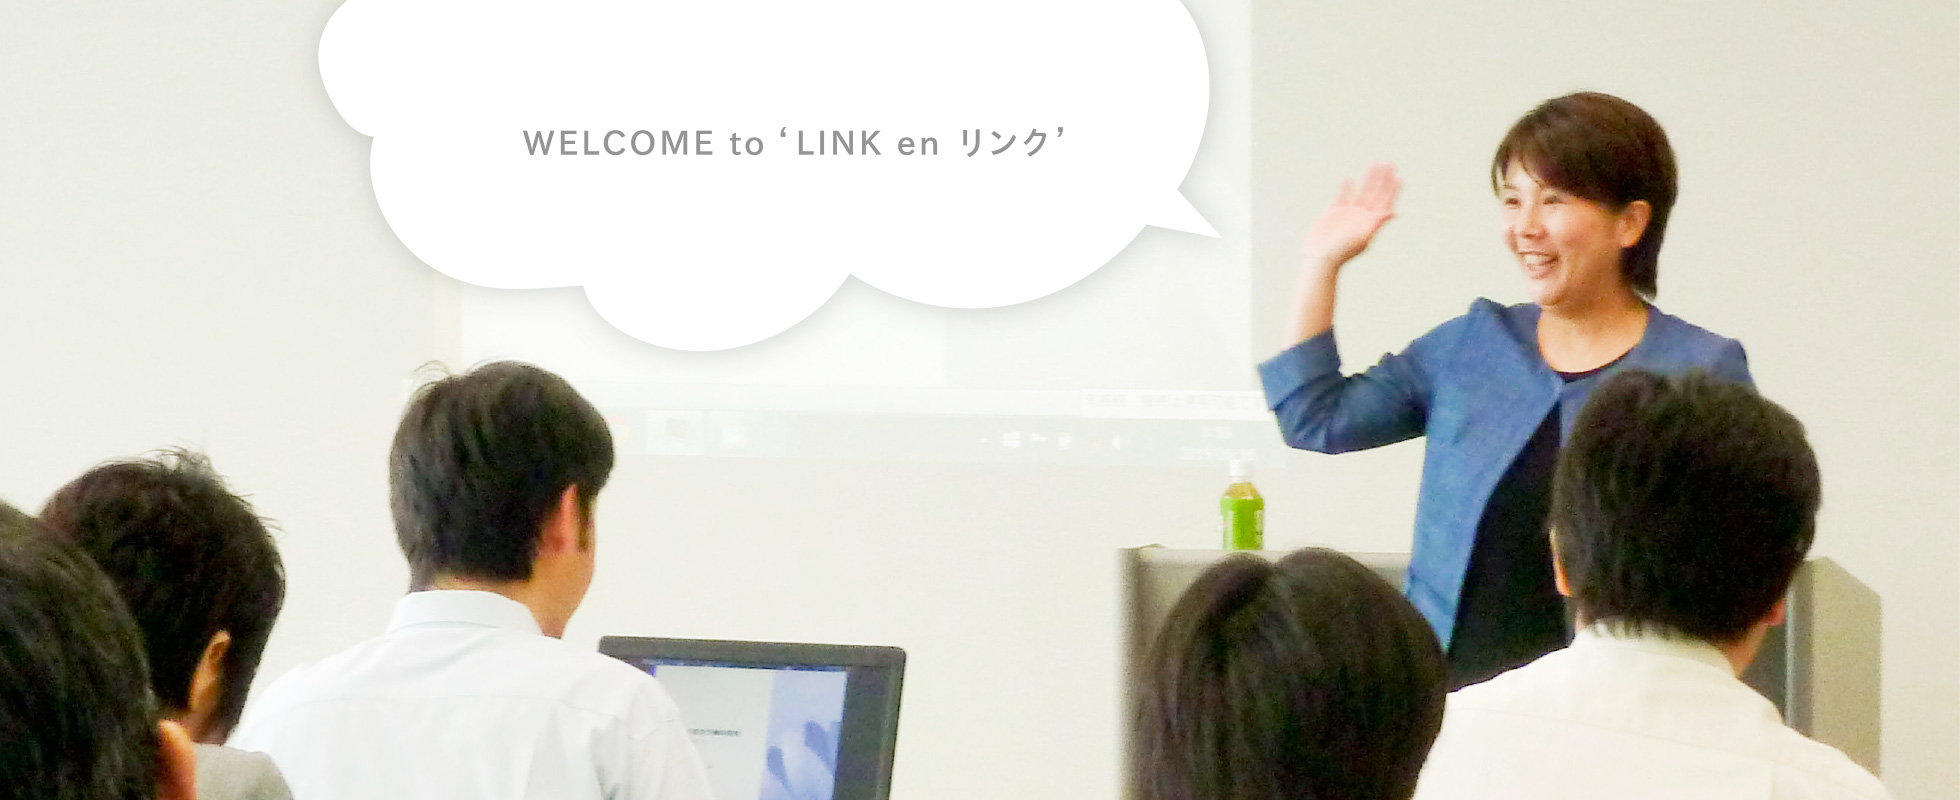 WELCOME to LINK en リンク